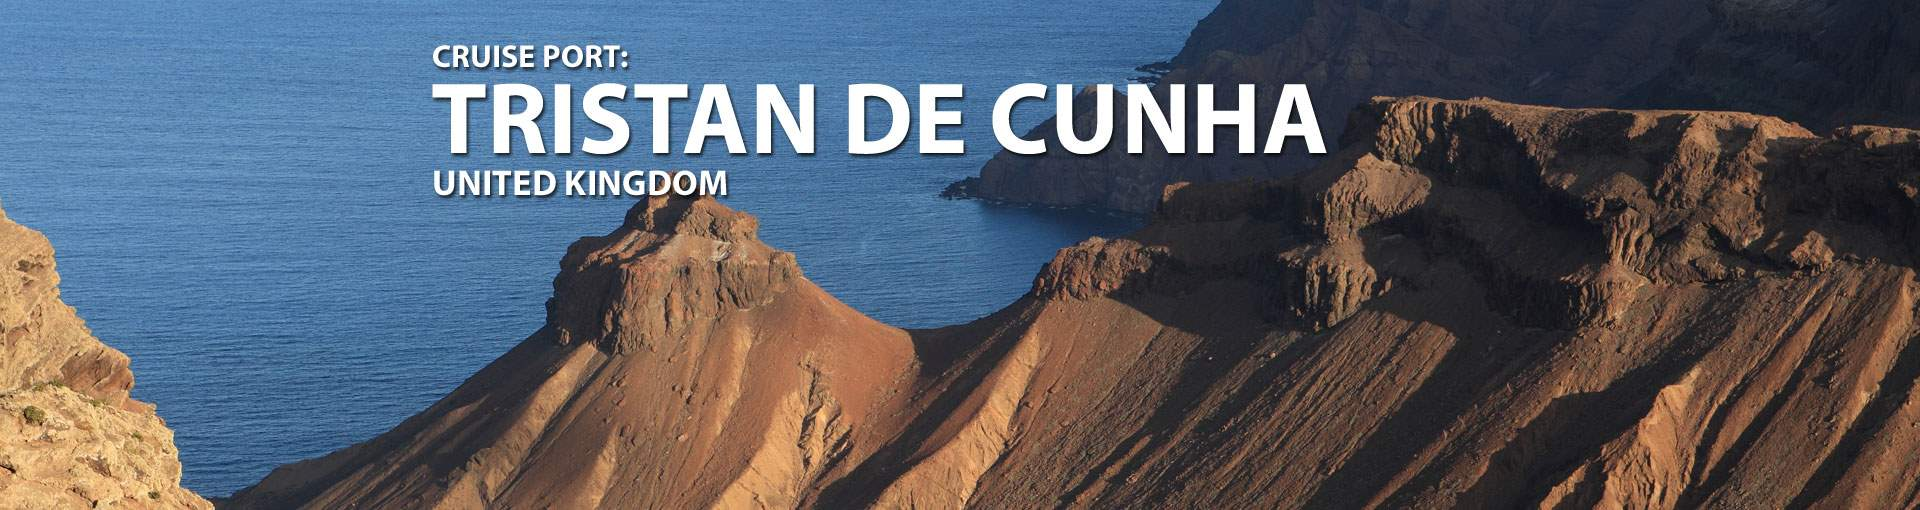 Cruises to Tristan De Cunha, United Kingdom